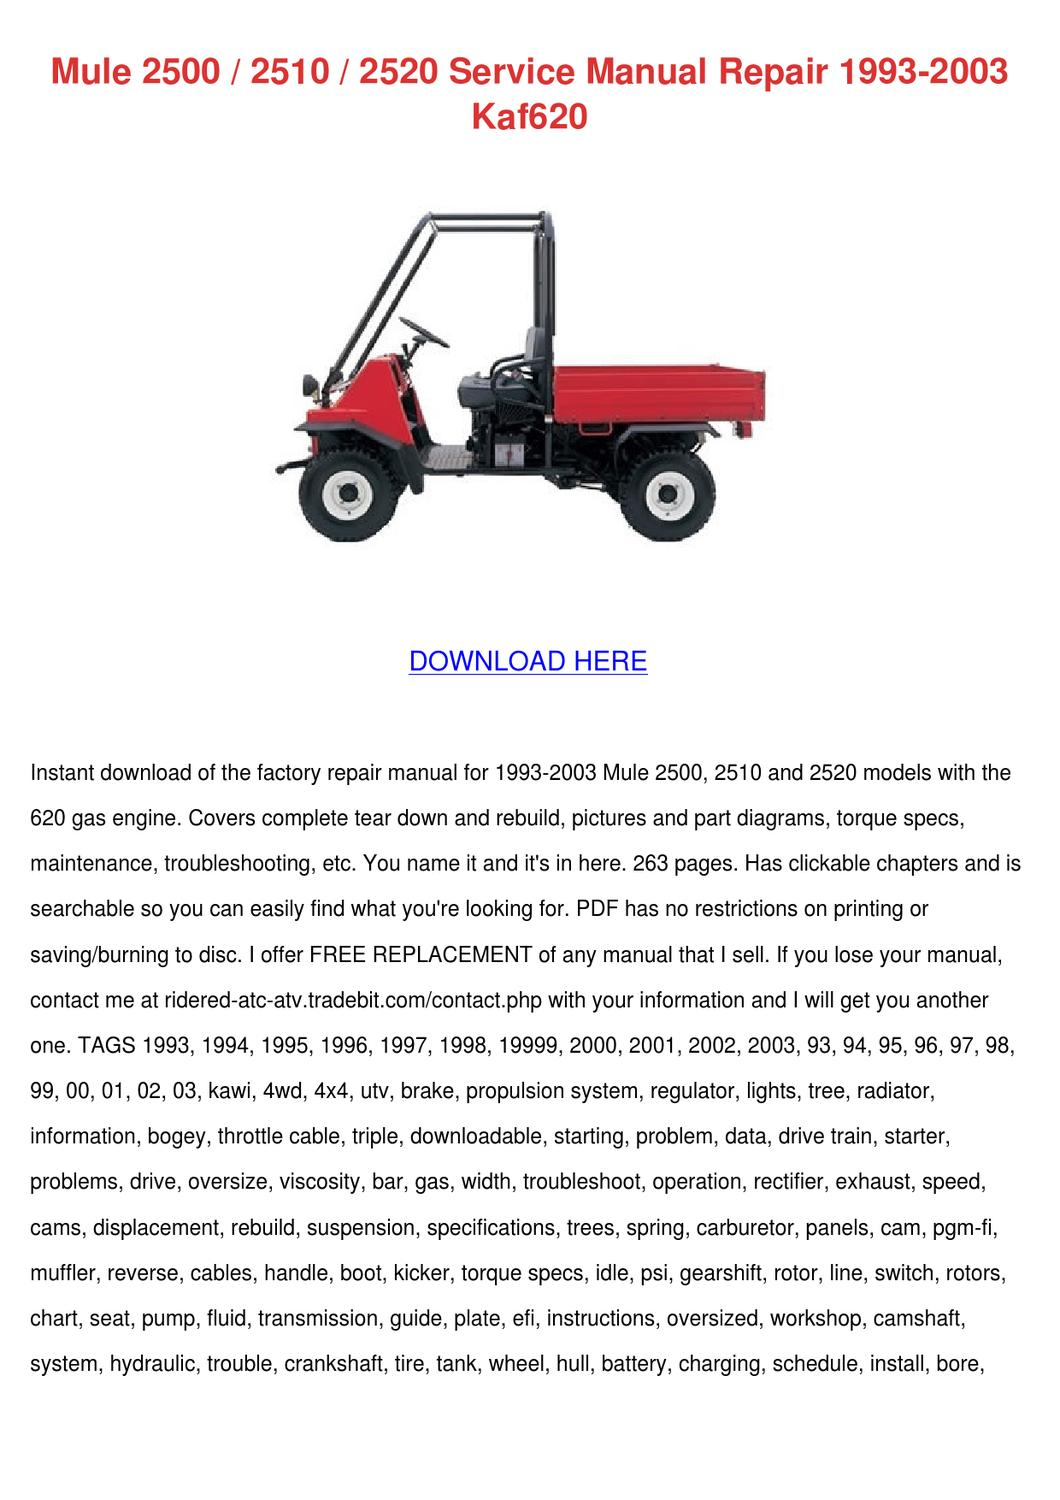 Mule 2500 2510 2520 Service Manual Repair 199 by Kathryn Gressman - issuu